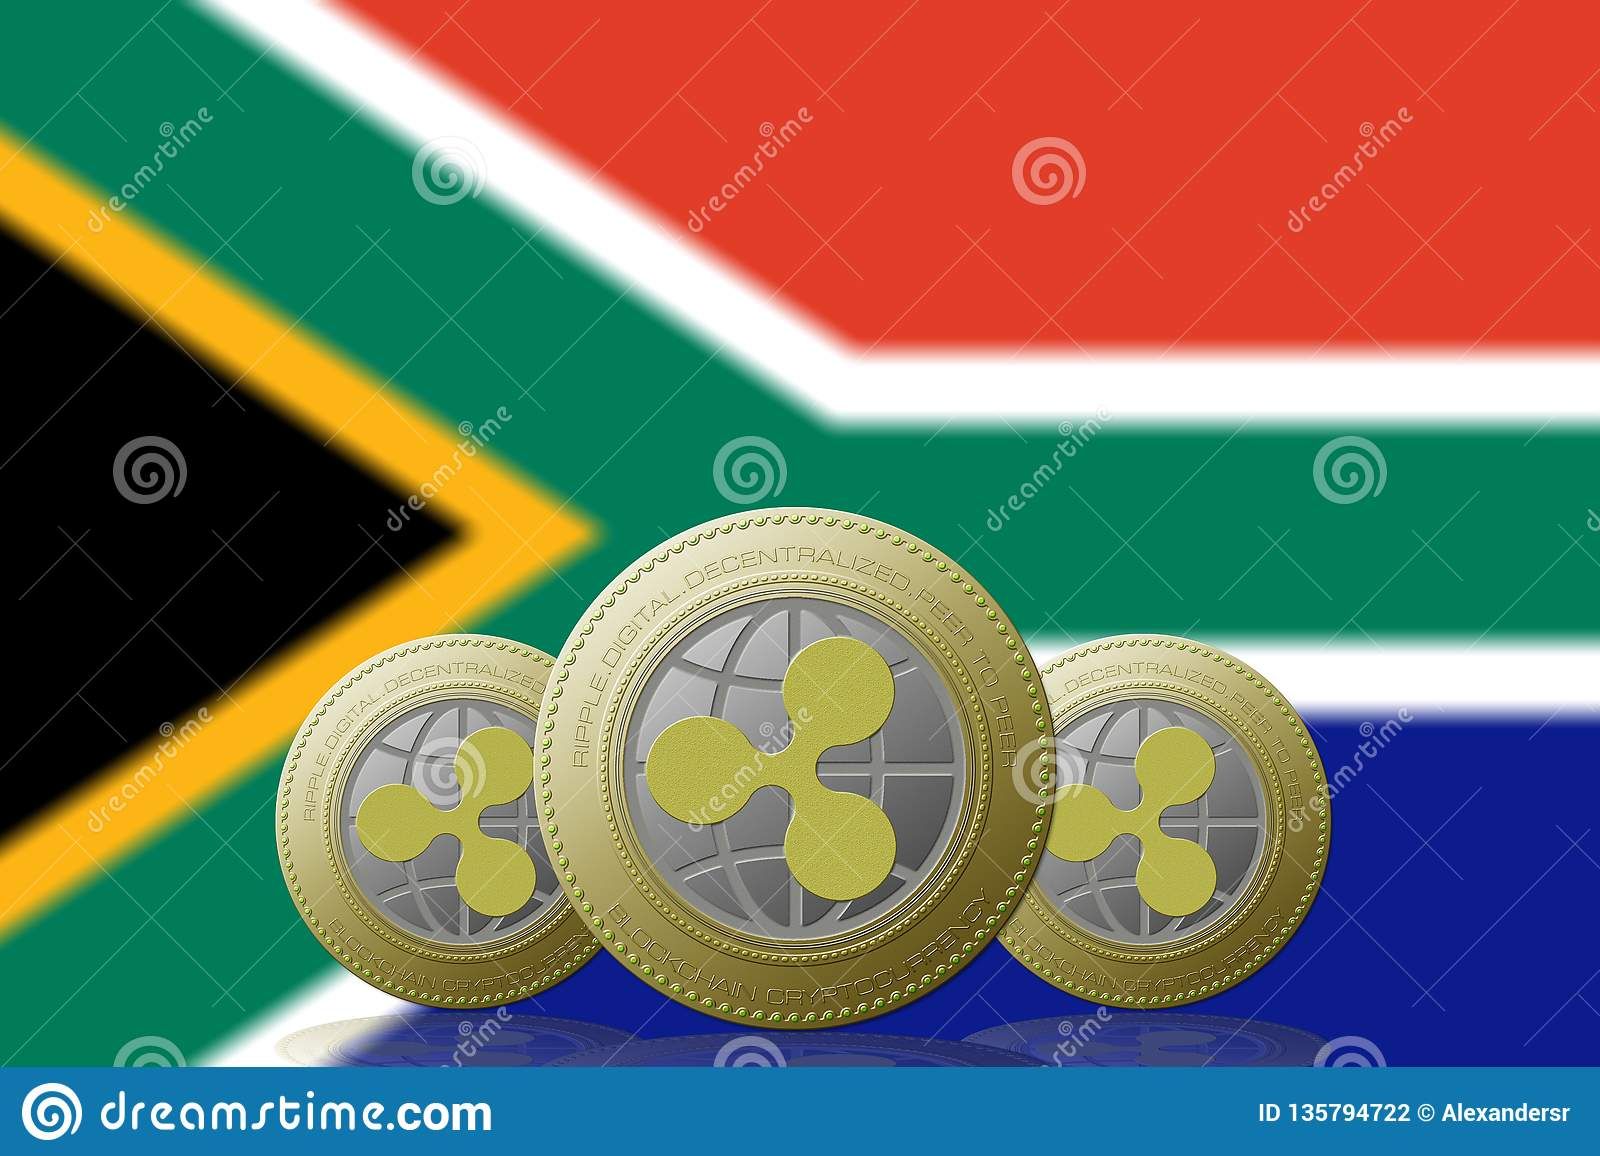 where to buy ripple cryptocurrency in south africa